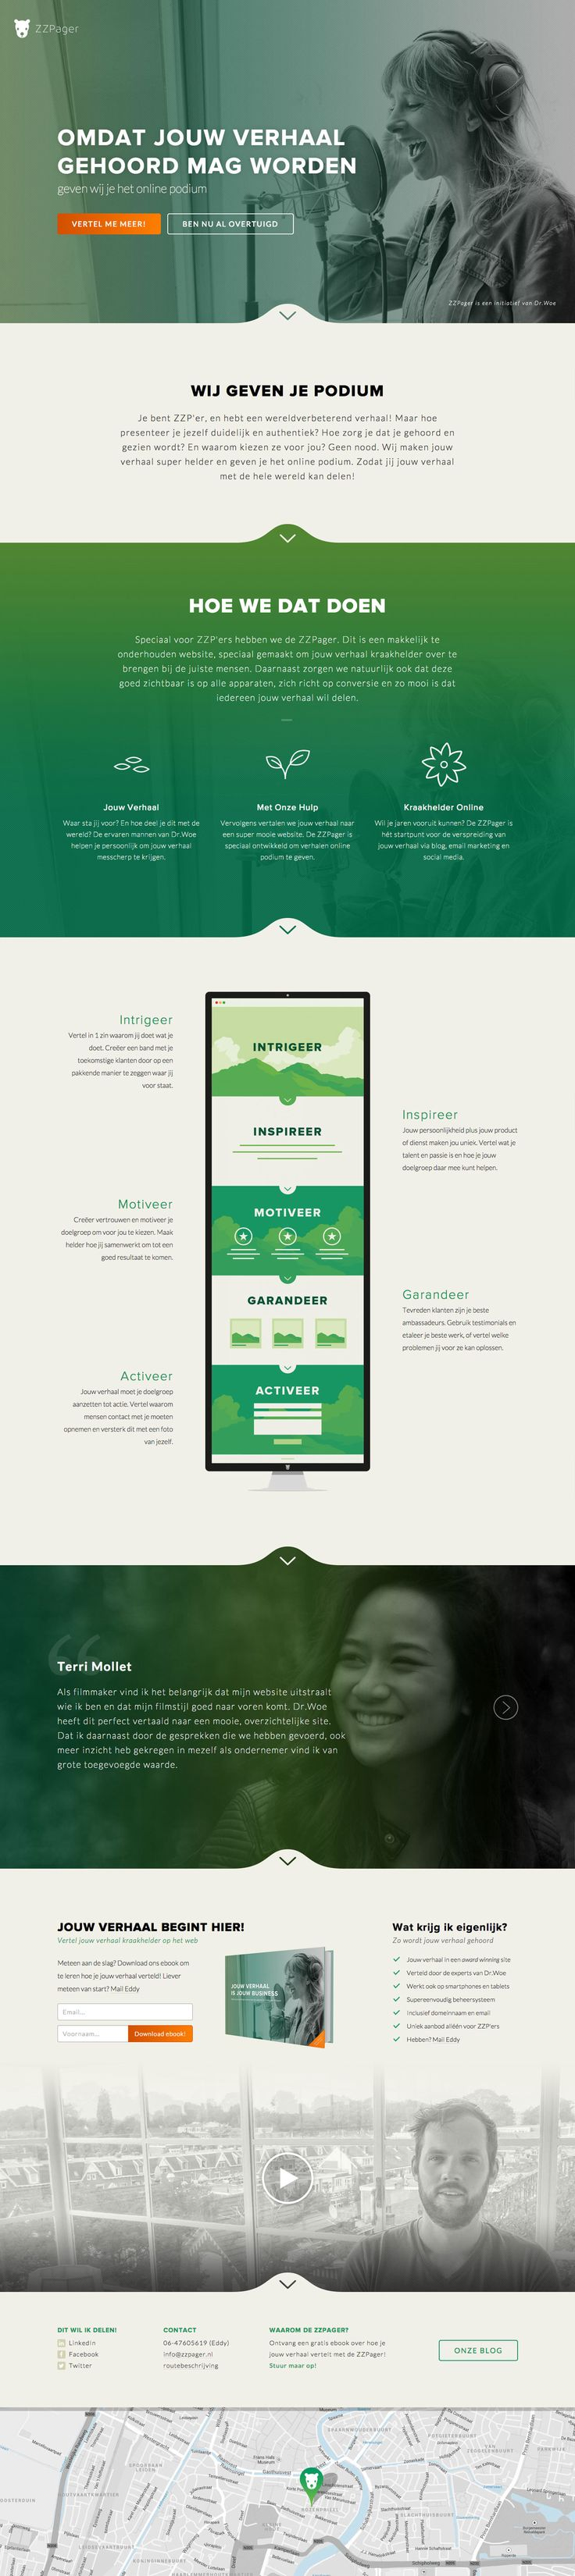 """Responsive one pager for 'ZZPager' - a new service that helps entrepreneurs """"tell their story"""" in a one pager. Really like that stretched one pager infographic."""